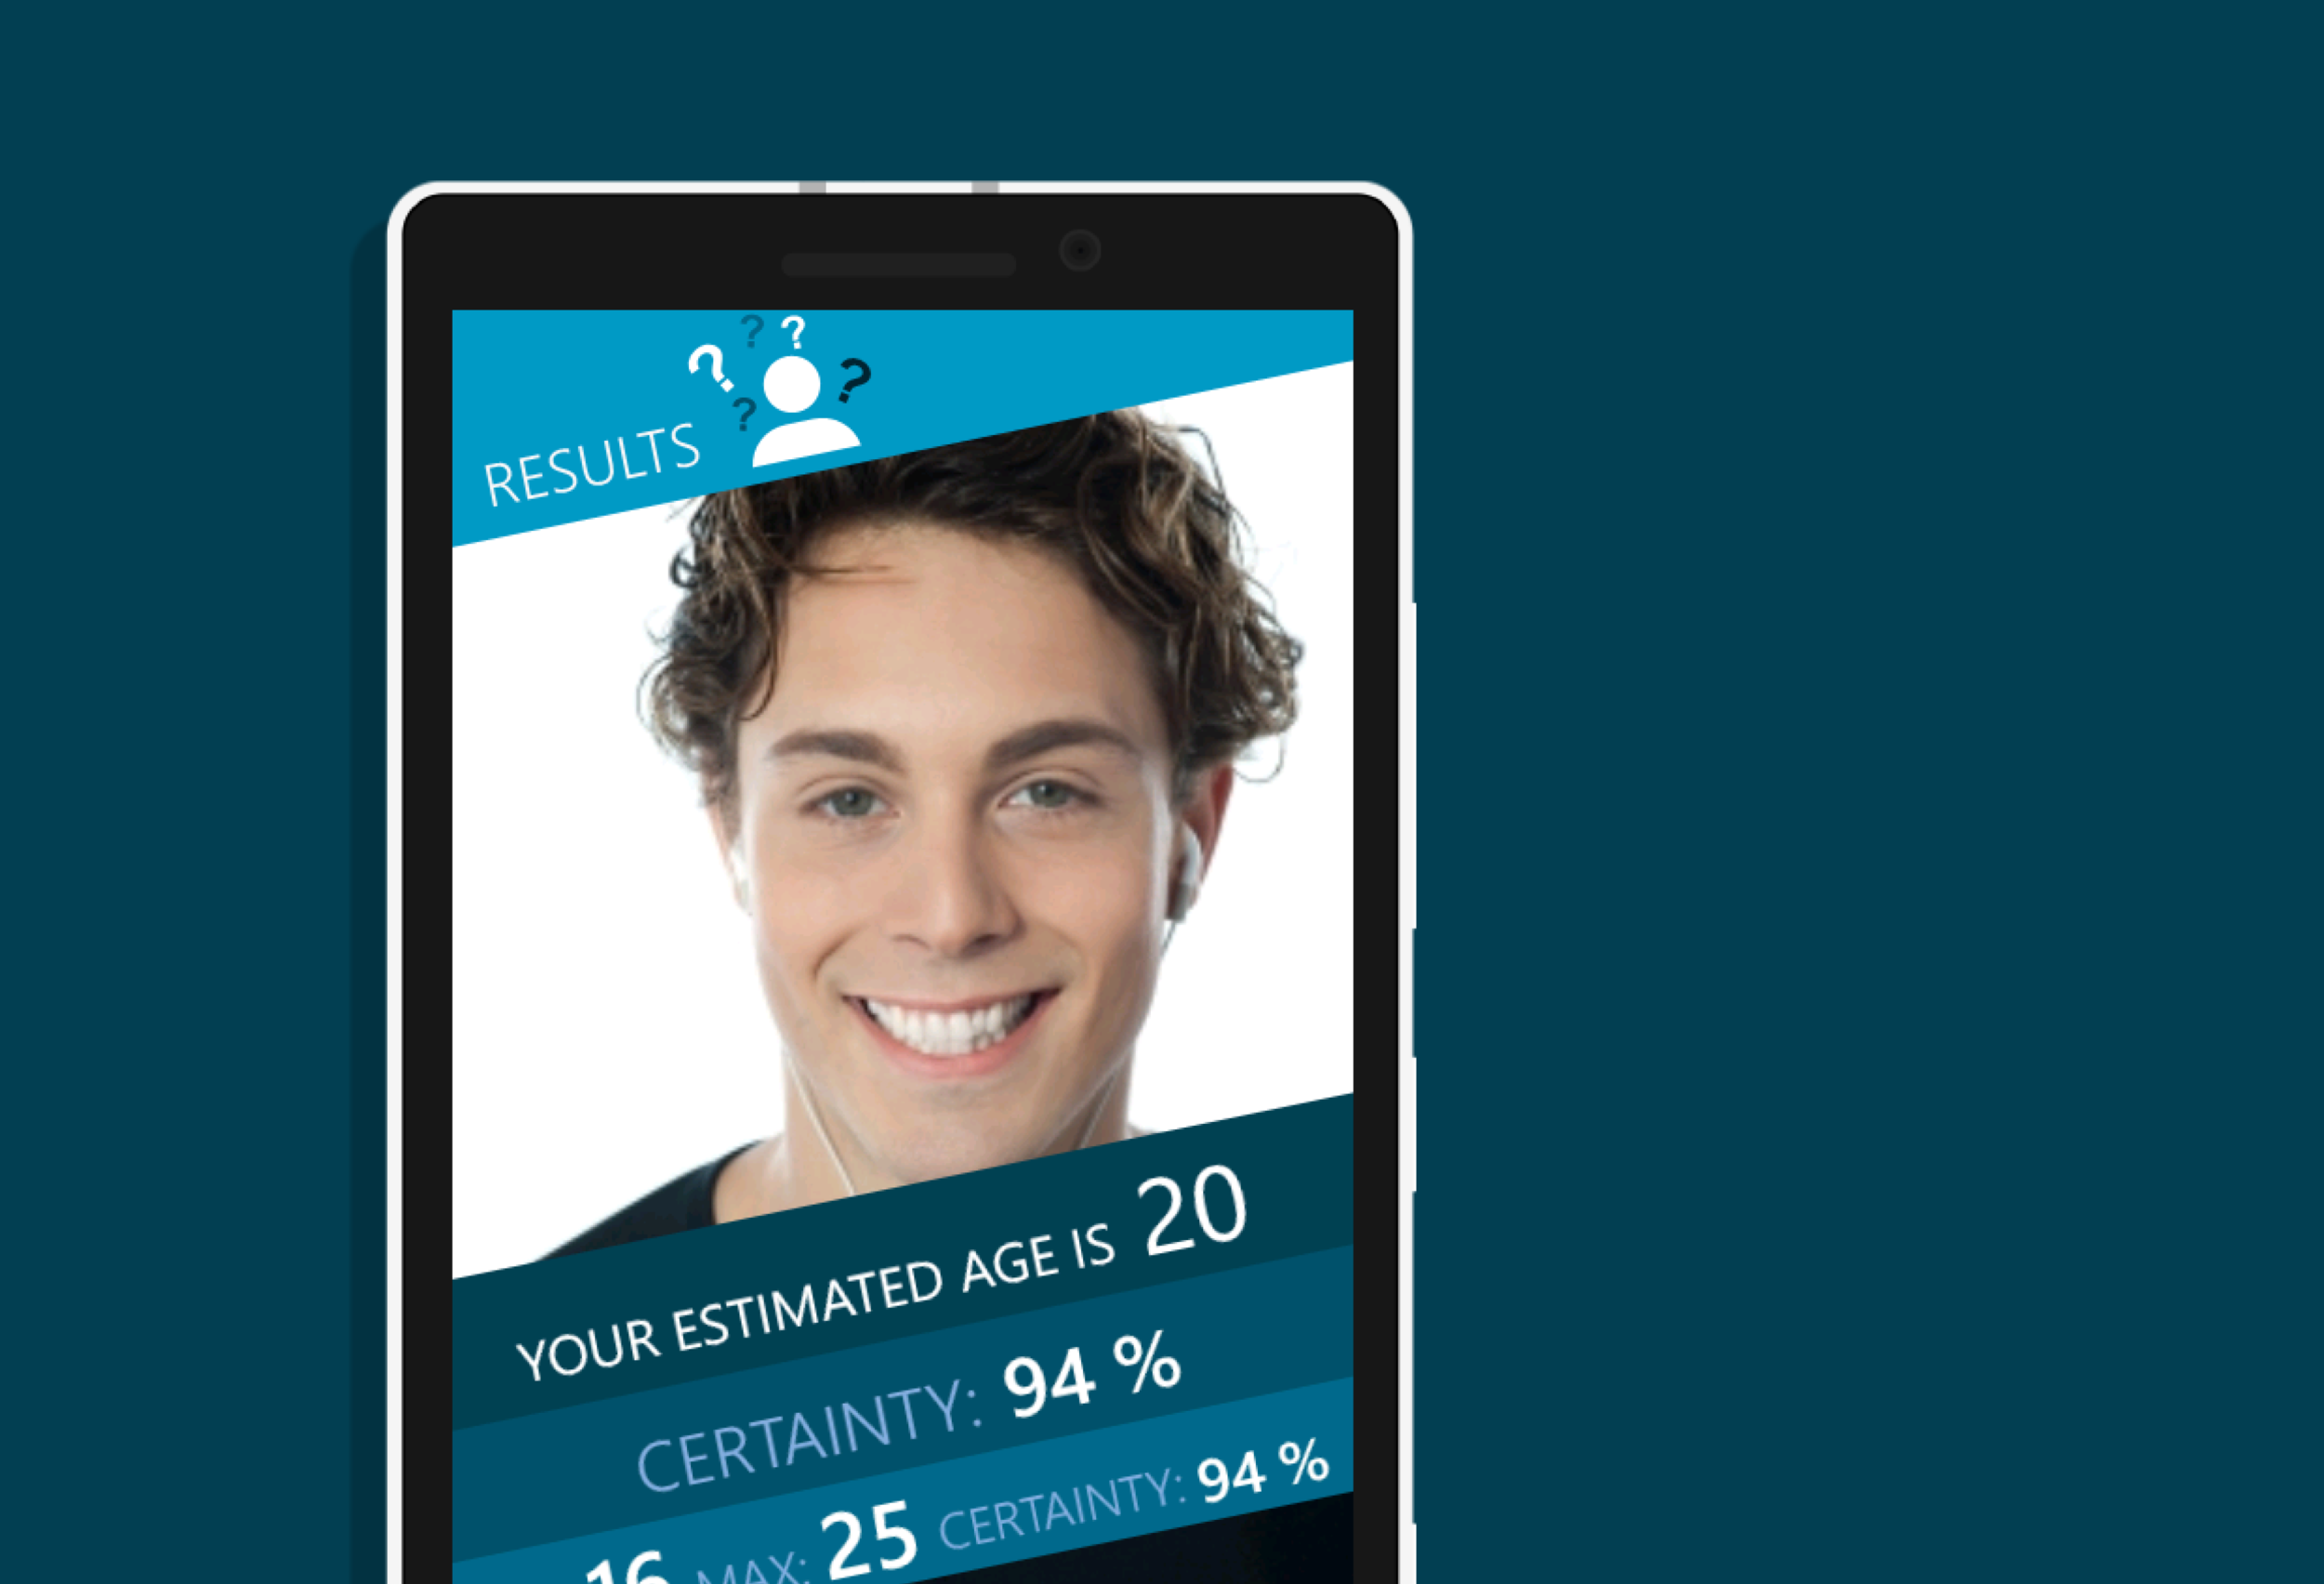 VizAge - An app for Windows Phone that used facial recognition to guess a user's age, powered by the Face.com API.